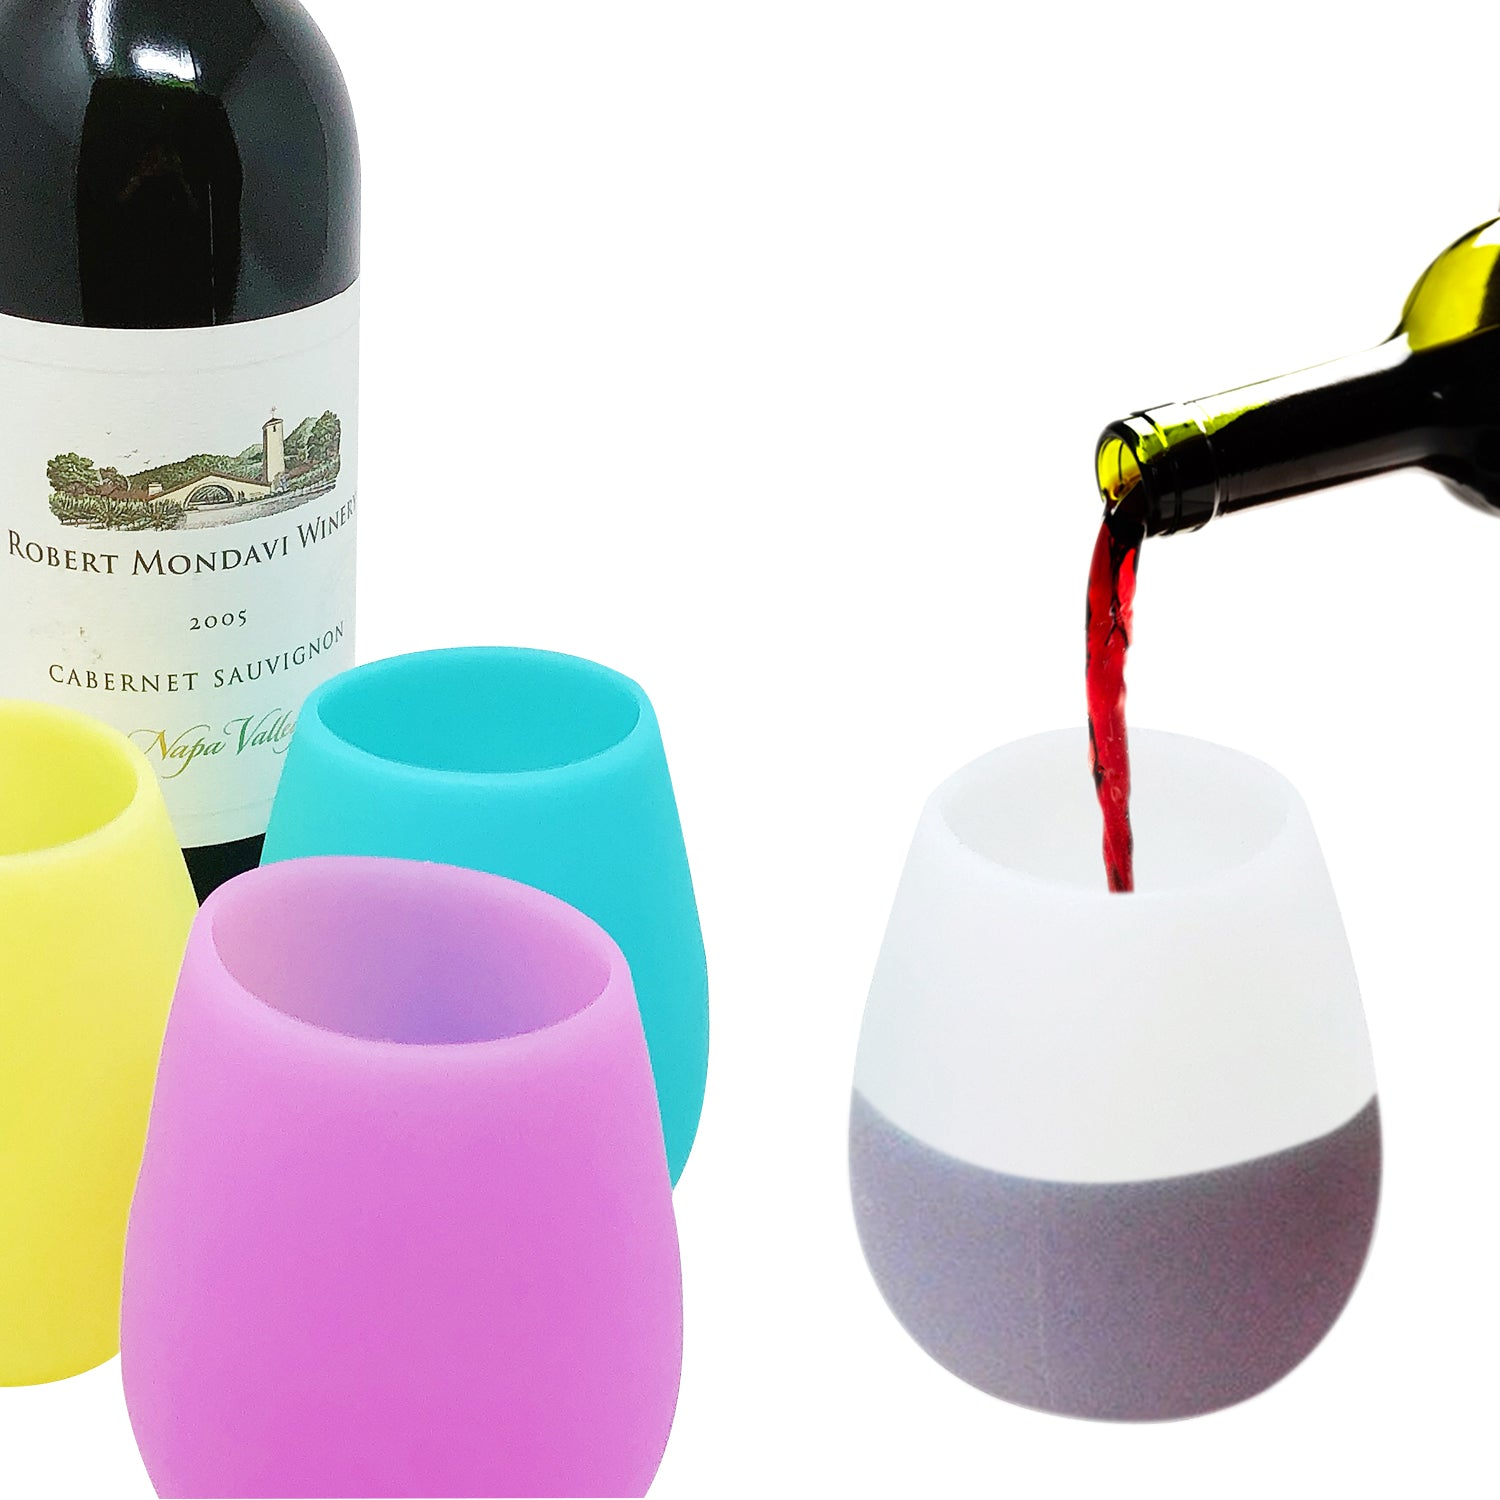 Wrapables Silicone Unbreakable Wine Cups for Camping, Picnic, Poolside, Outdoors (Set of 6)